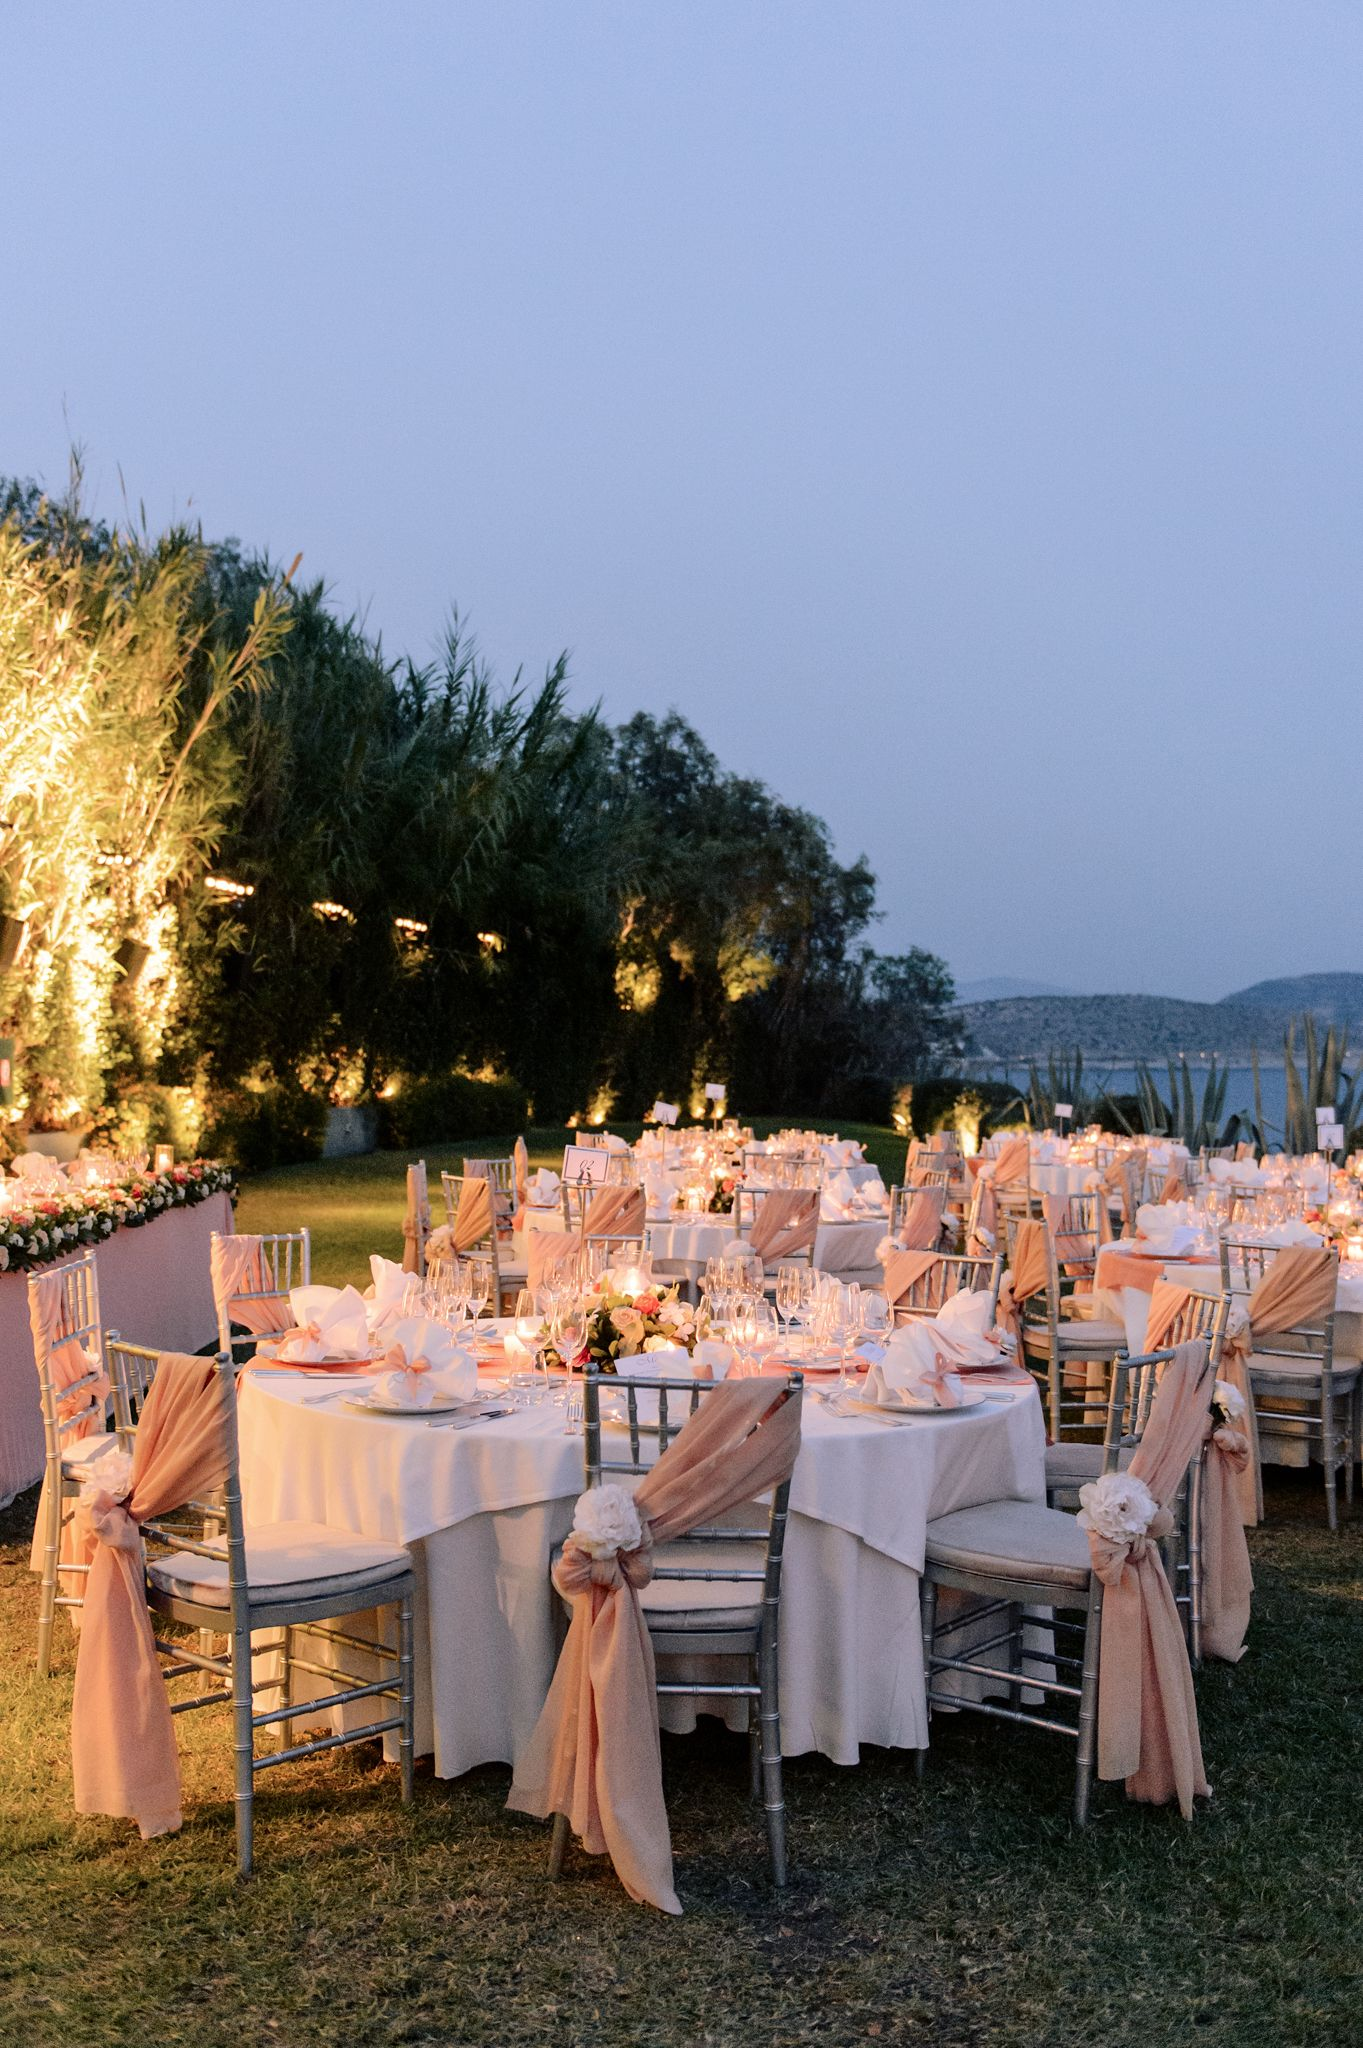 Classic Romance Wedding With All The Trimmings in